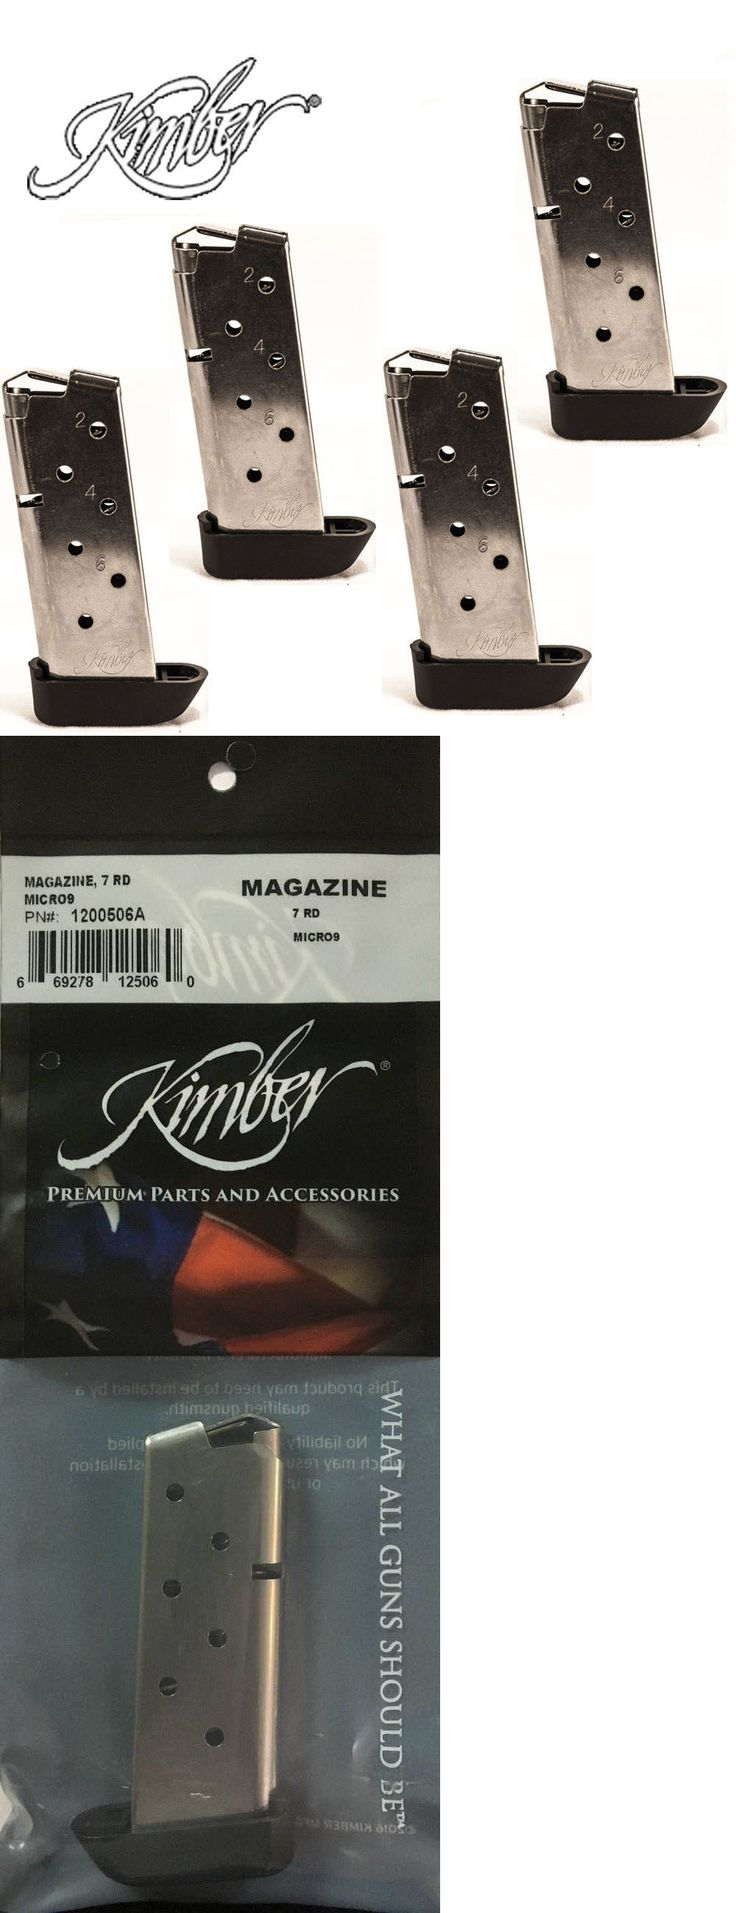 Magazines 177879: Kimber Factory ( Micro 9 ) 9Mm 7-Round Magazine W Extension (4-Pack) #1200506A -> BUY IT NOW ONLY: $98 on eBay!